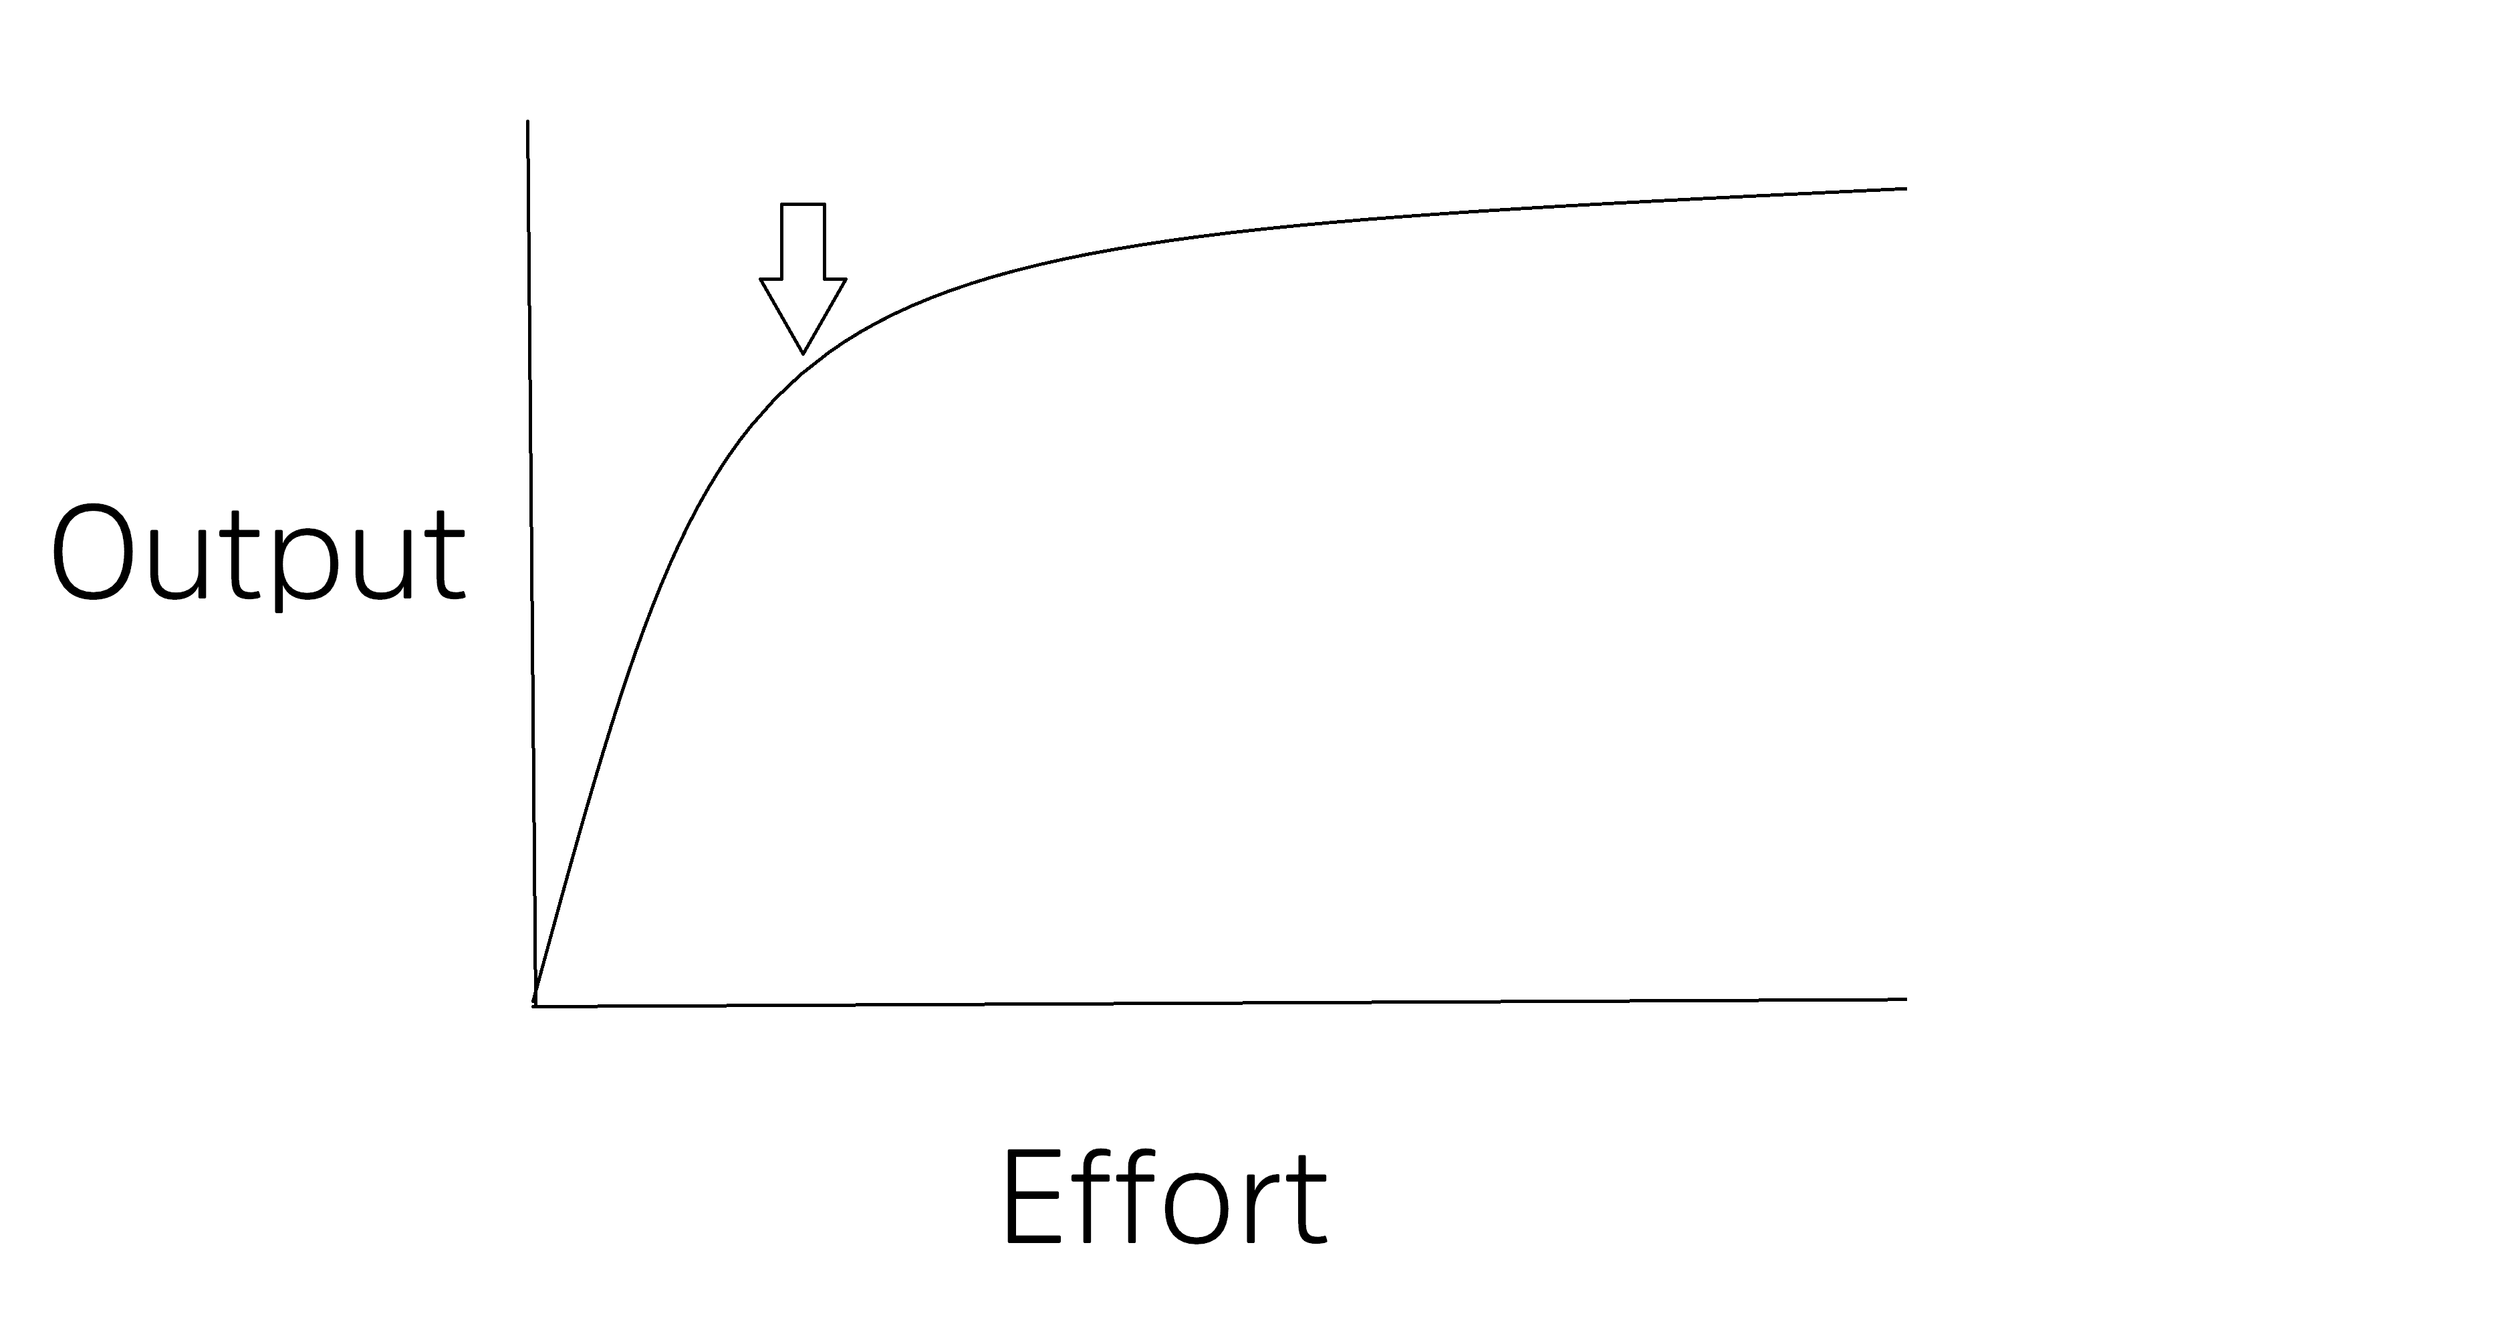 Notice the arrow pointing at the sweet spot, where we start to lose output for each additional unit of effort.